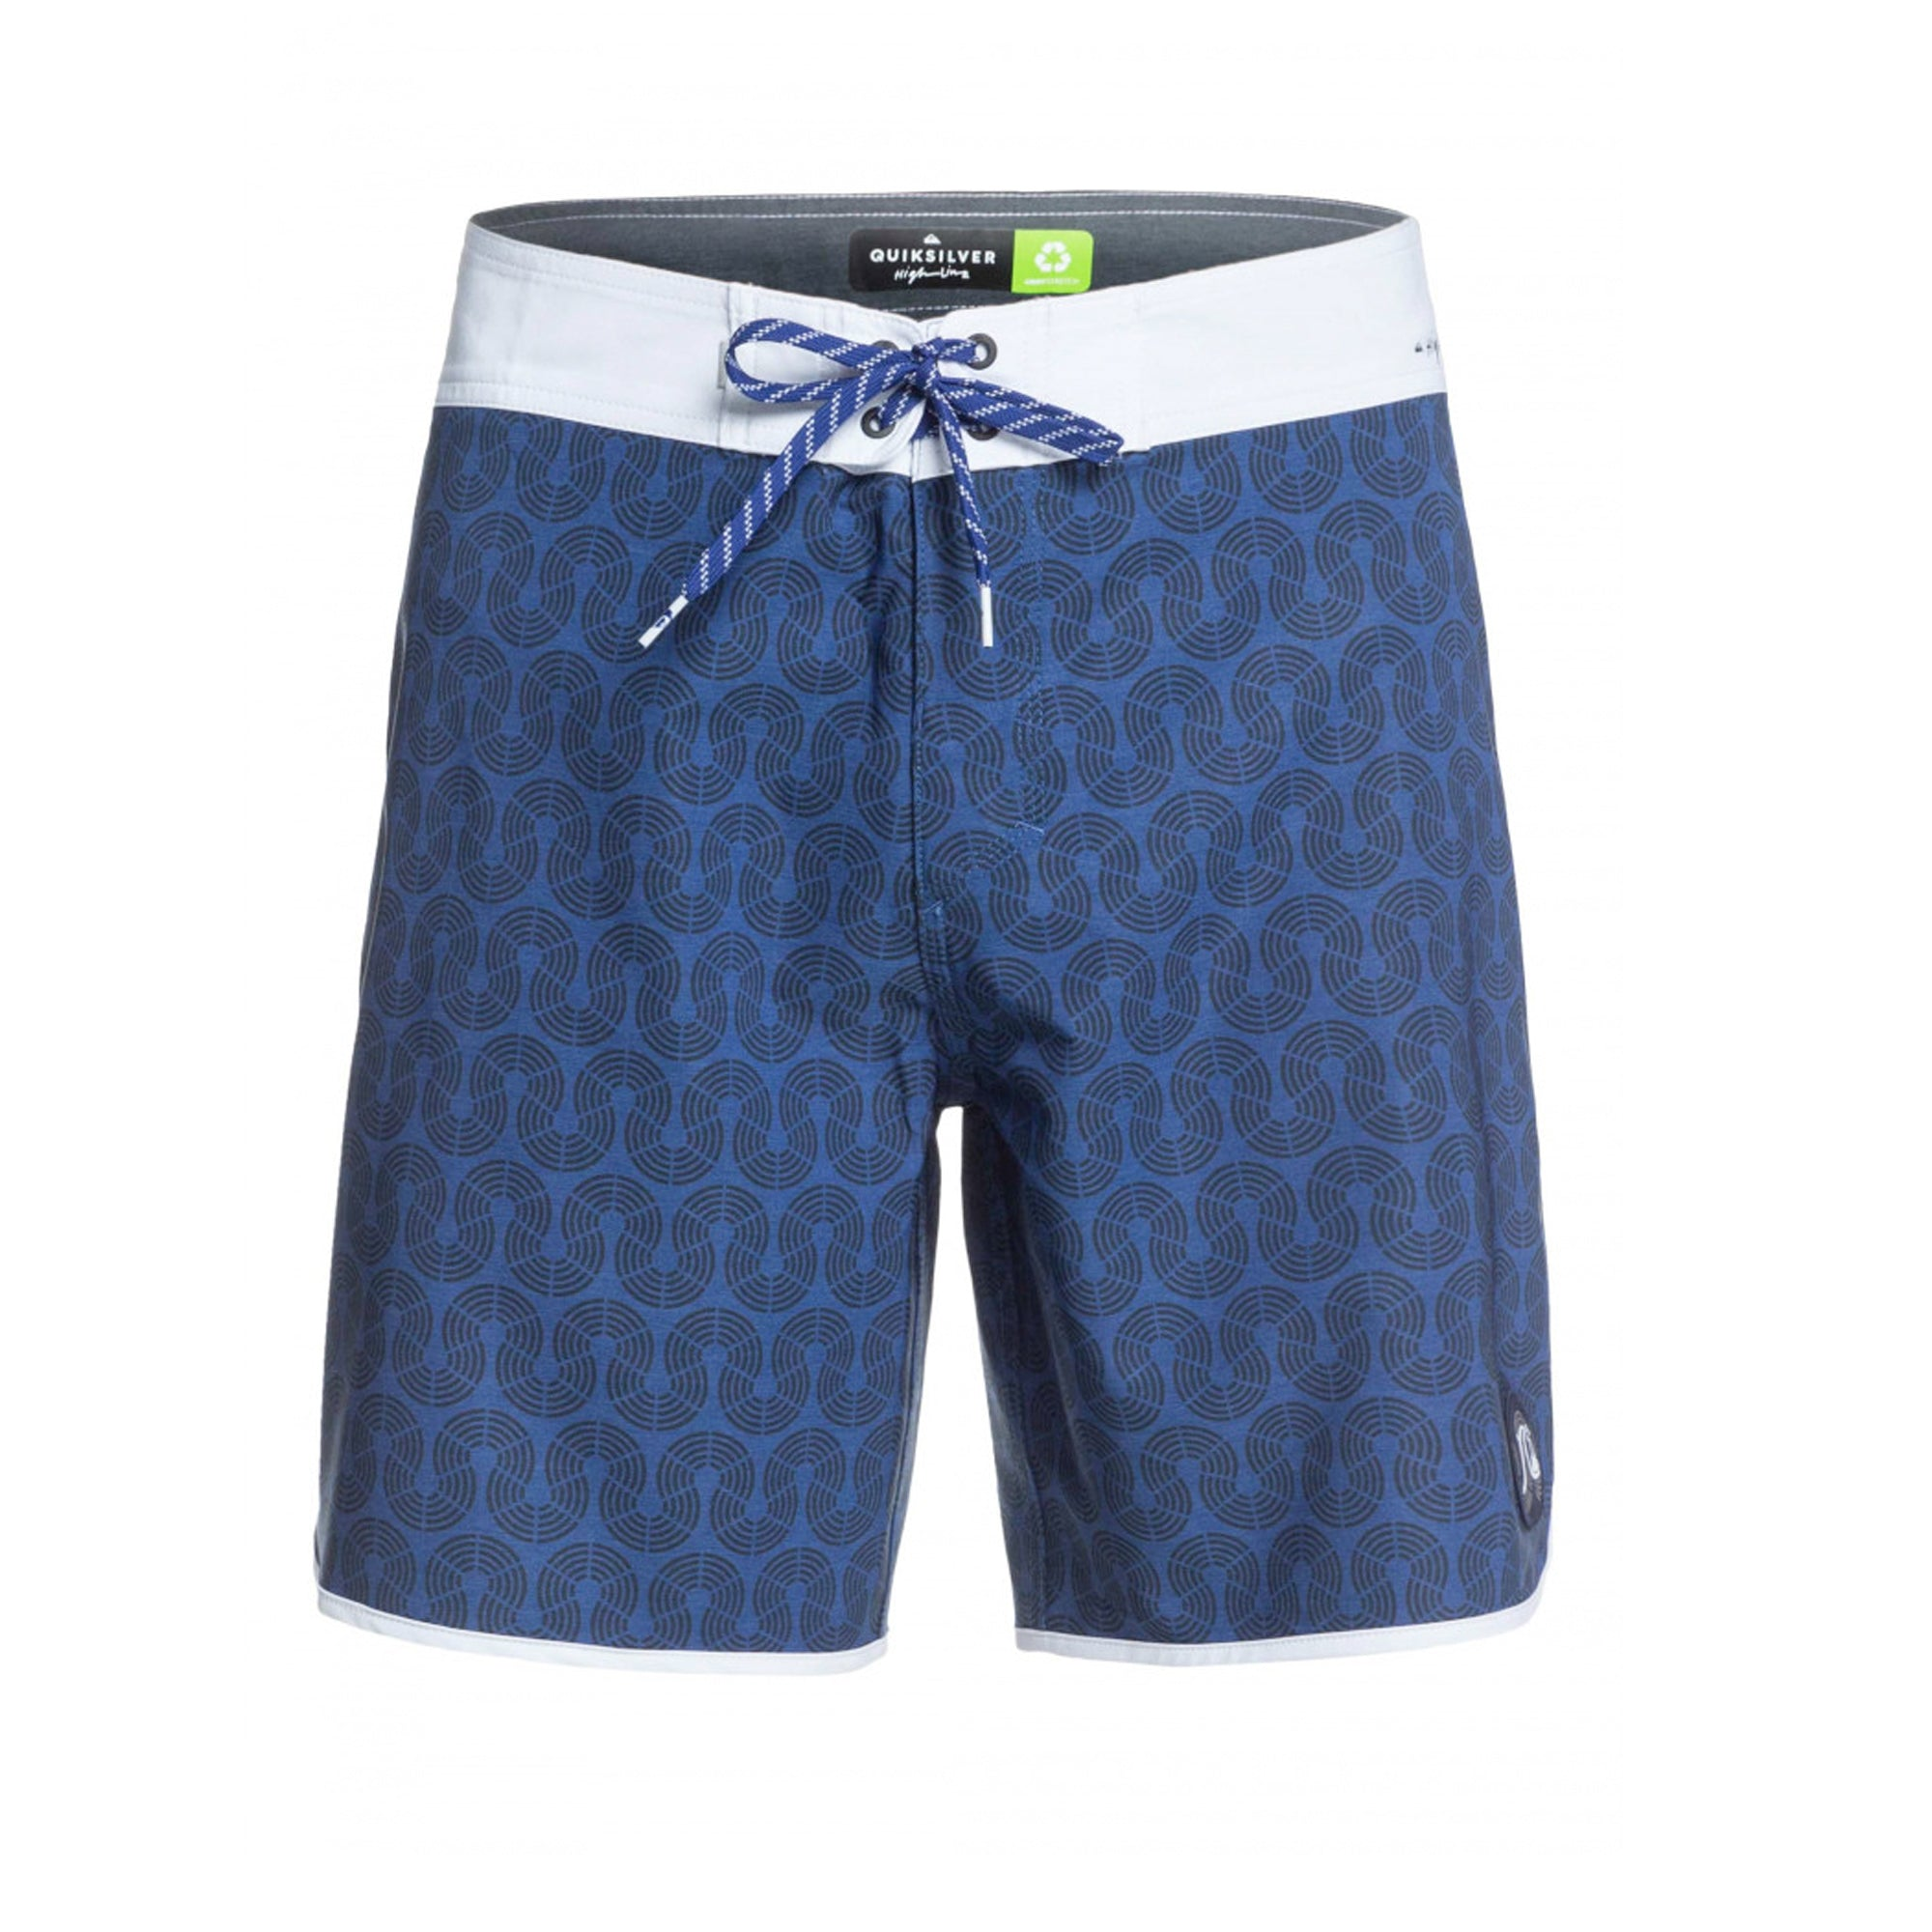 Quiksilver Highline Tokolo Scallop Men's Boardshorts